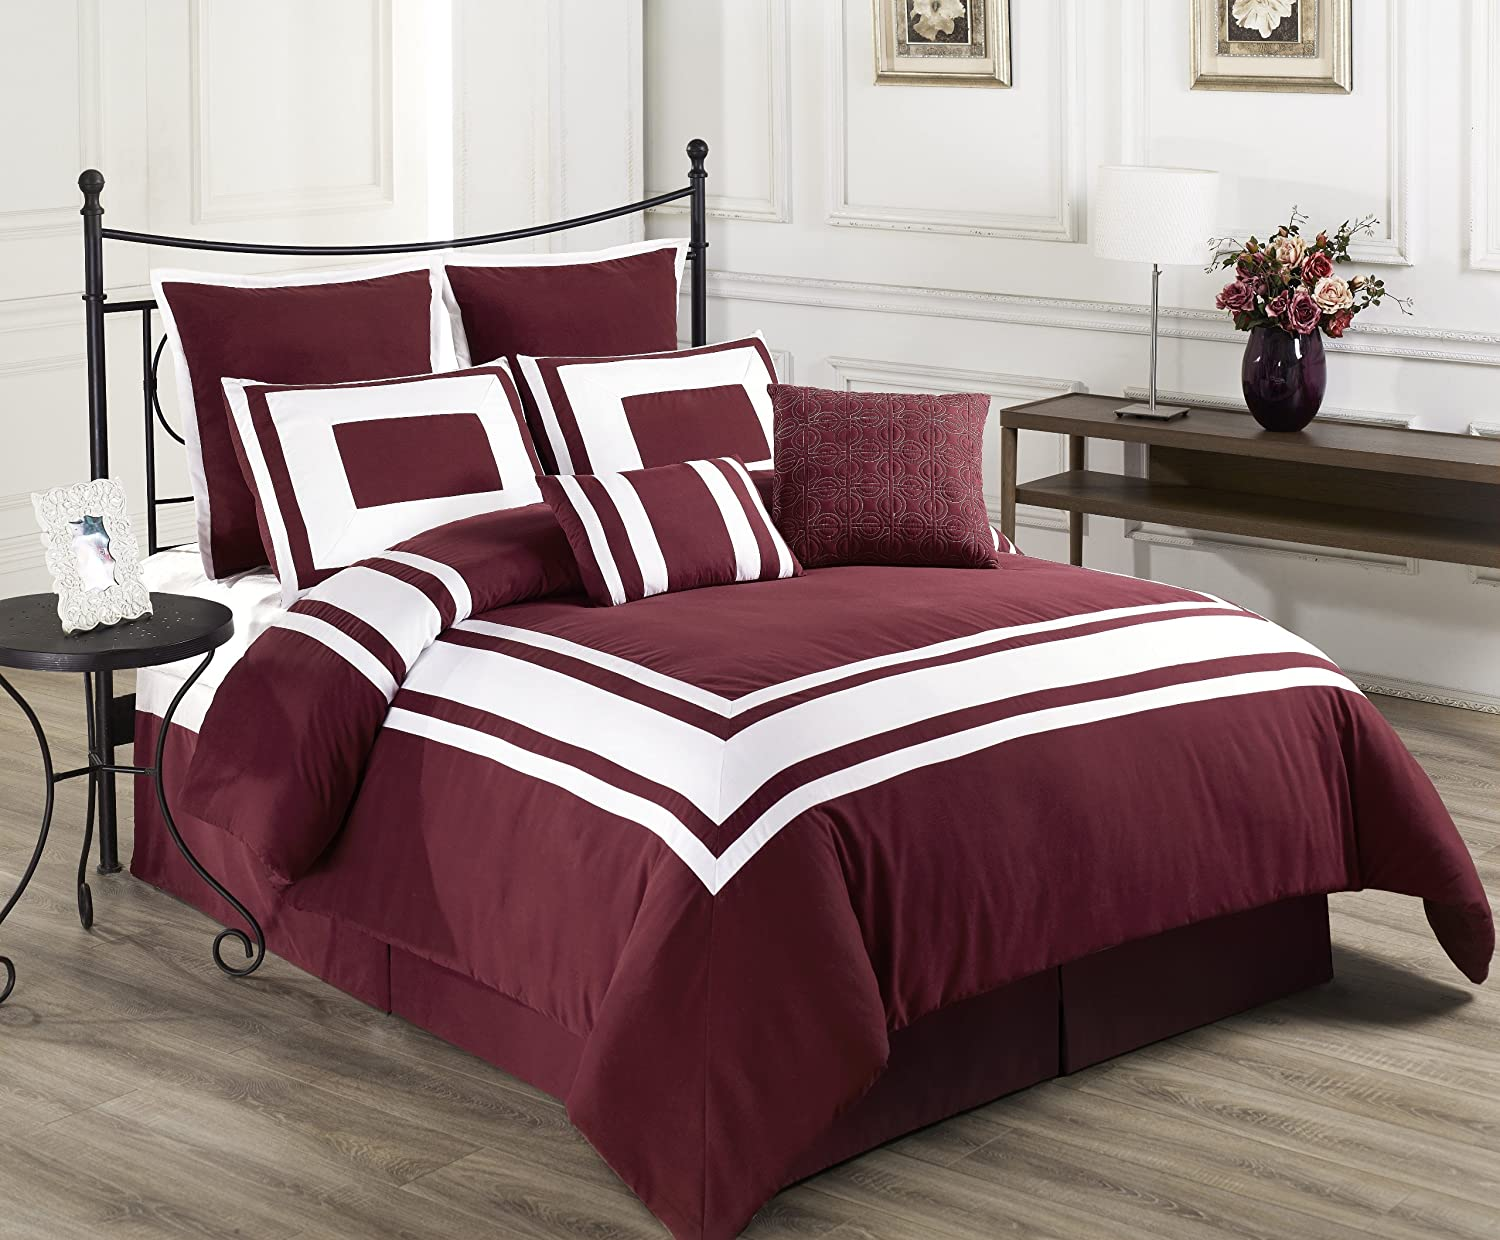 Burgundy Bedding That Is Classy And Elegant